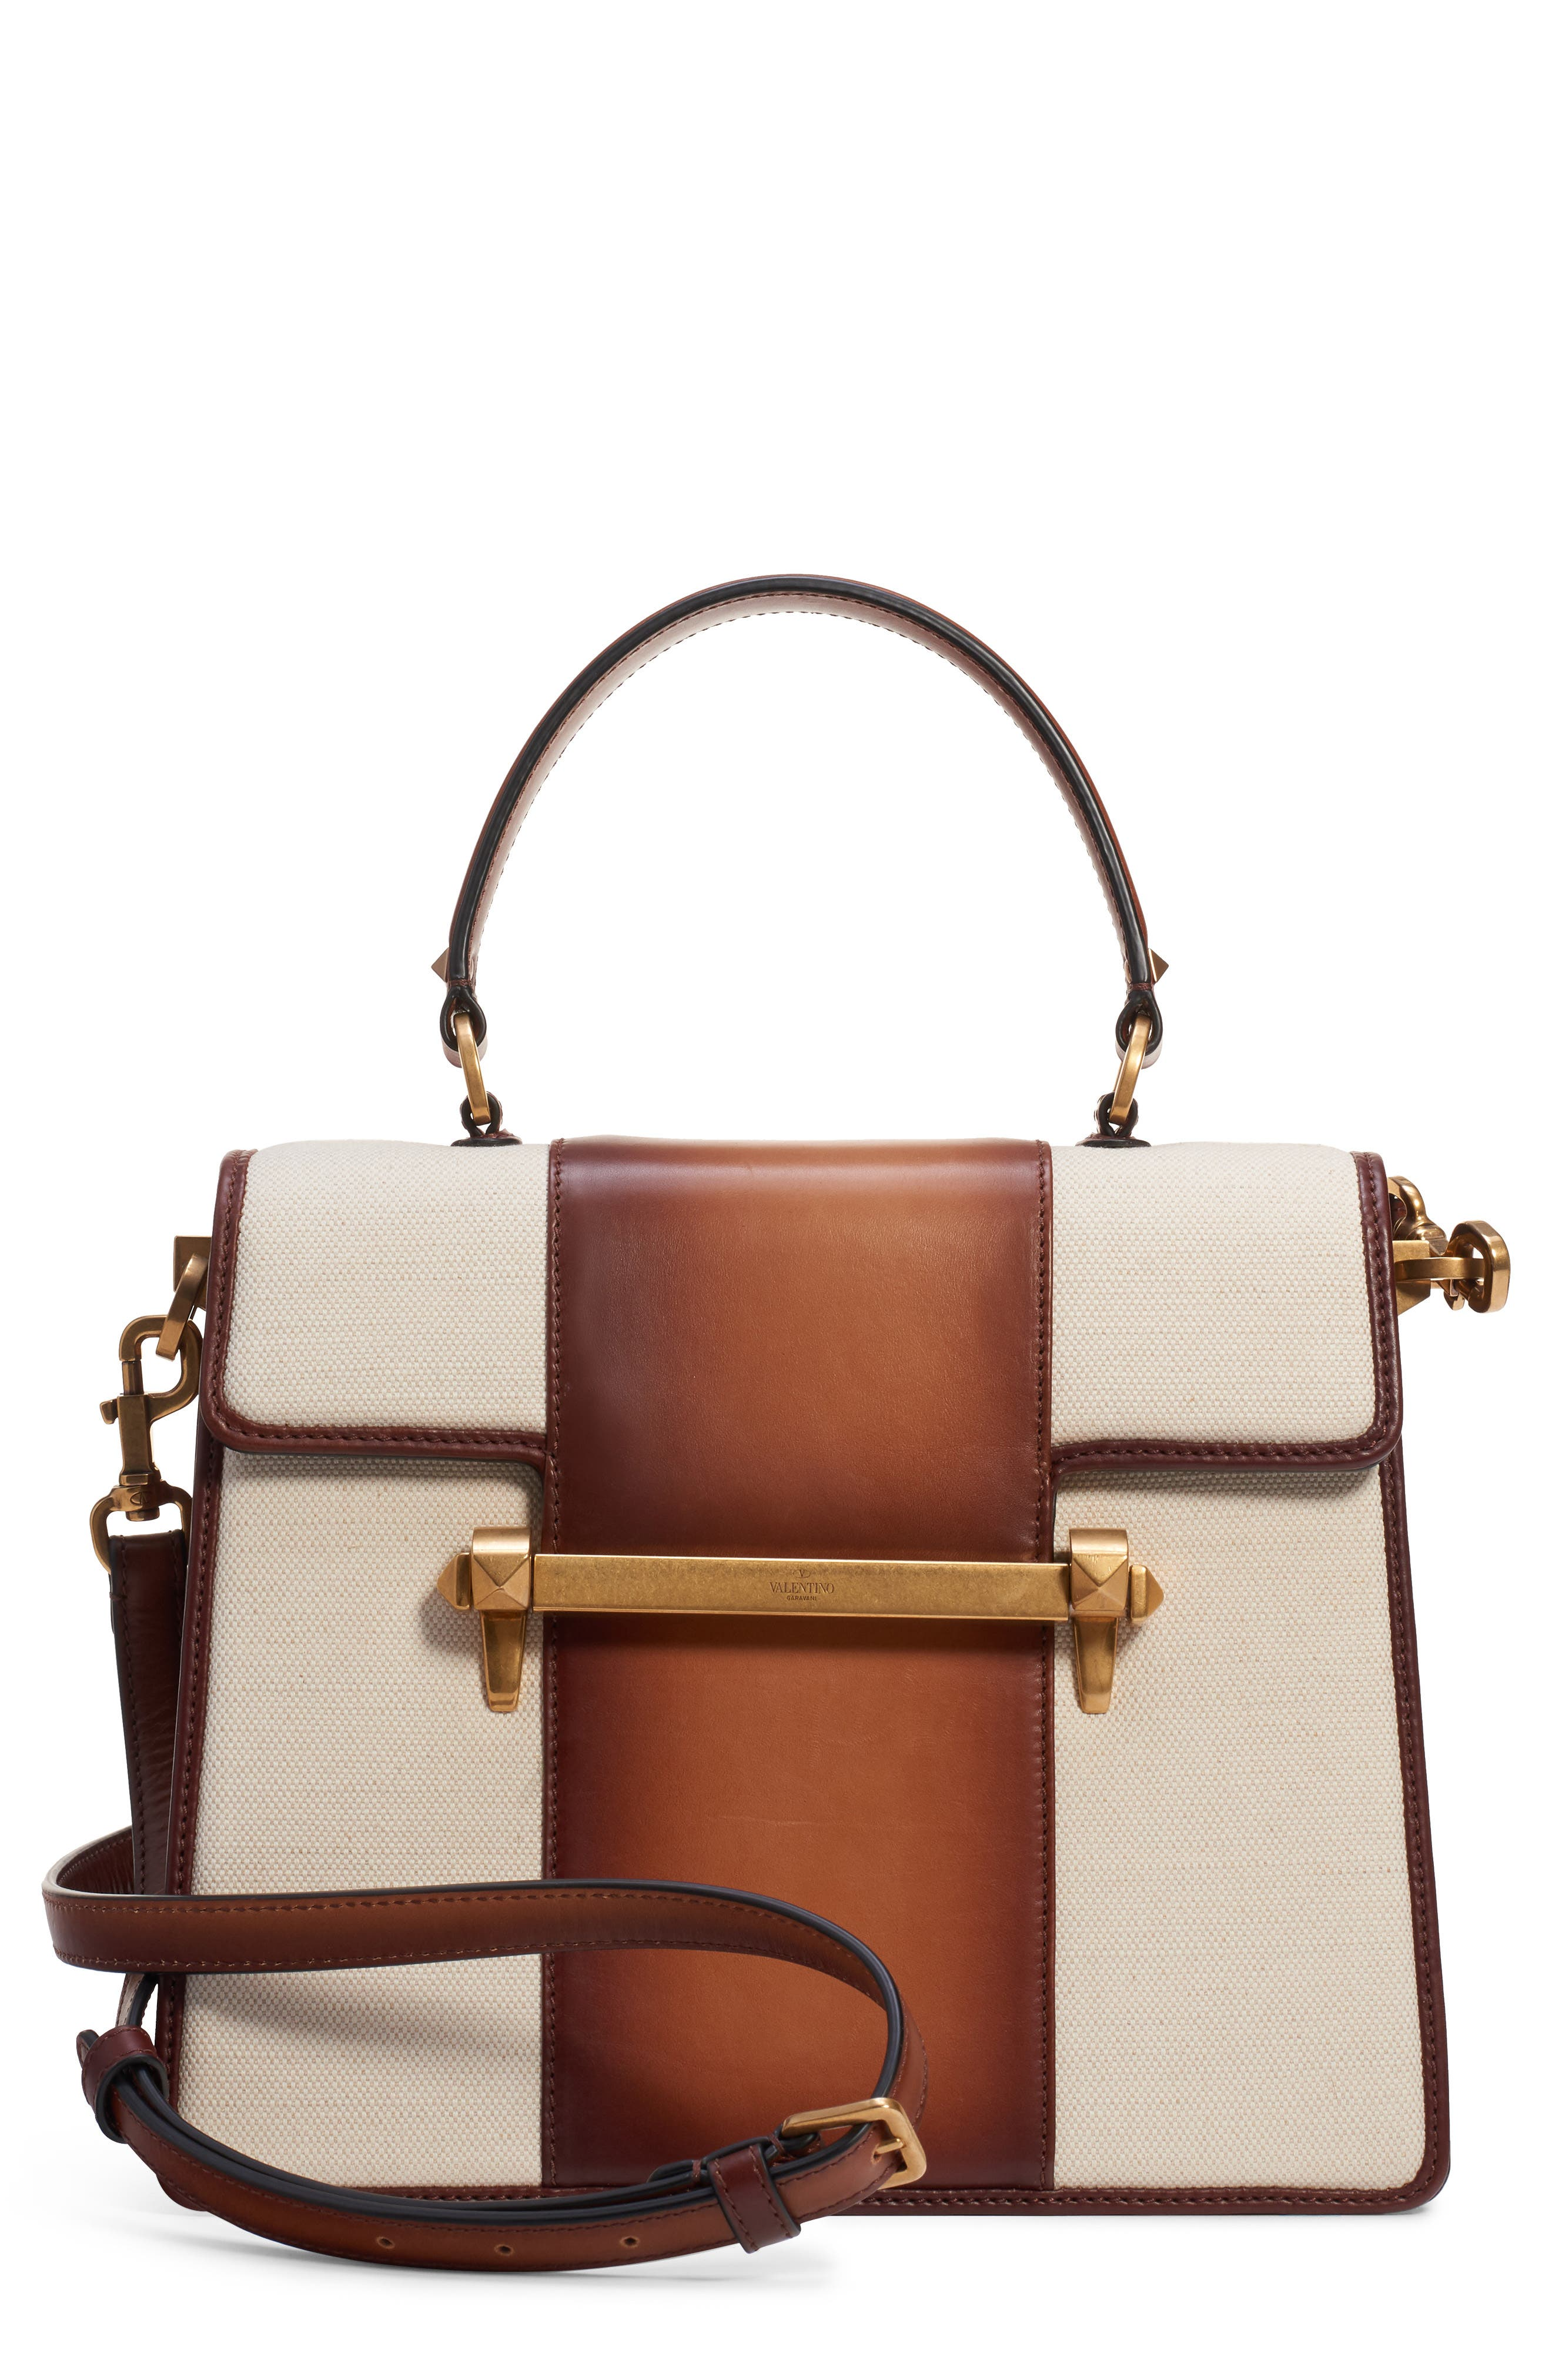 Uptown Single Handle Bag,                         Main,                         color, NATURALE/ BRIGHT COGNAC